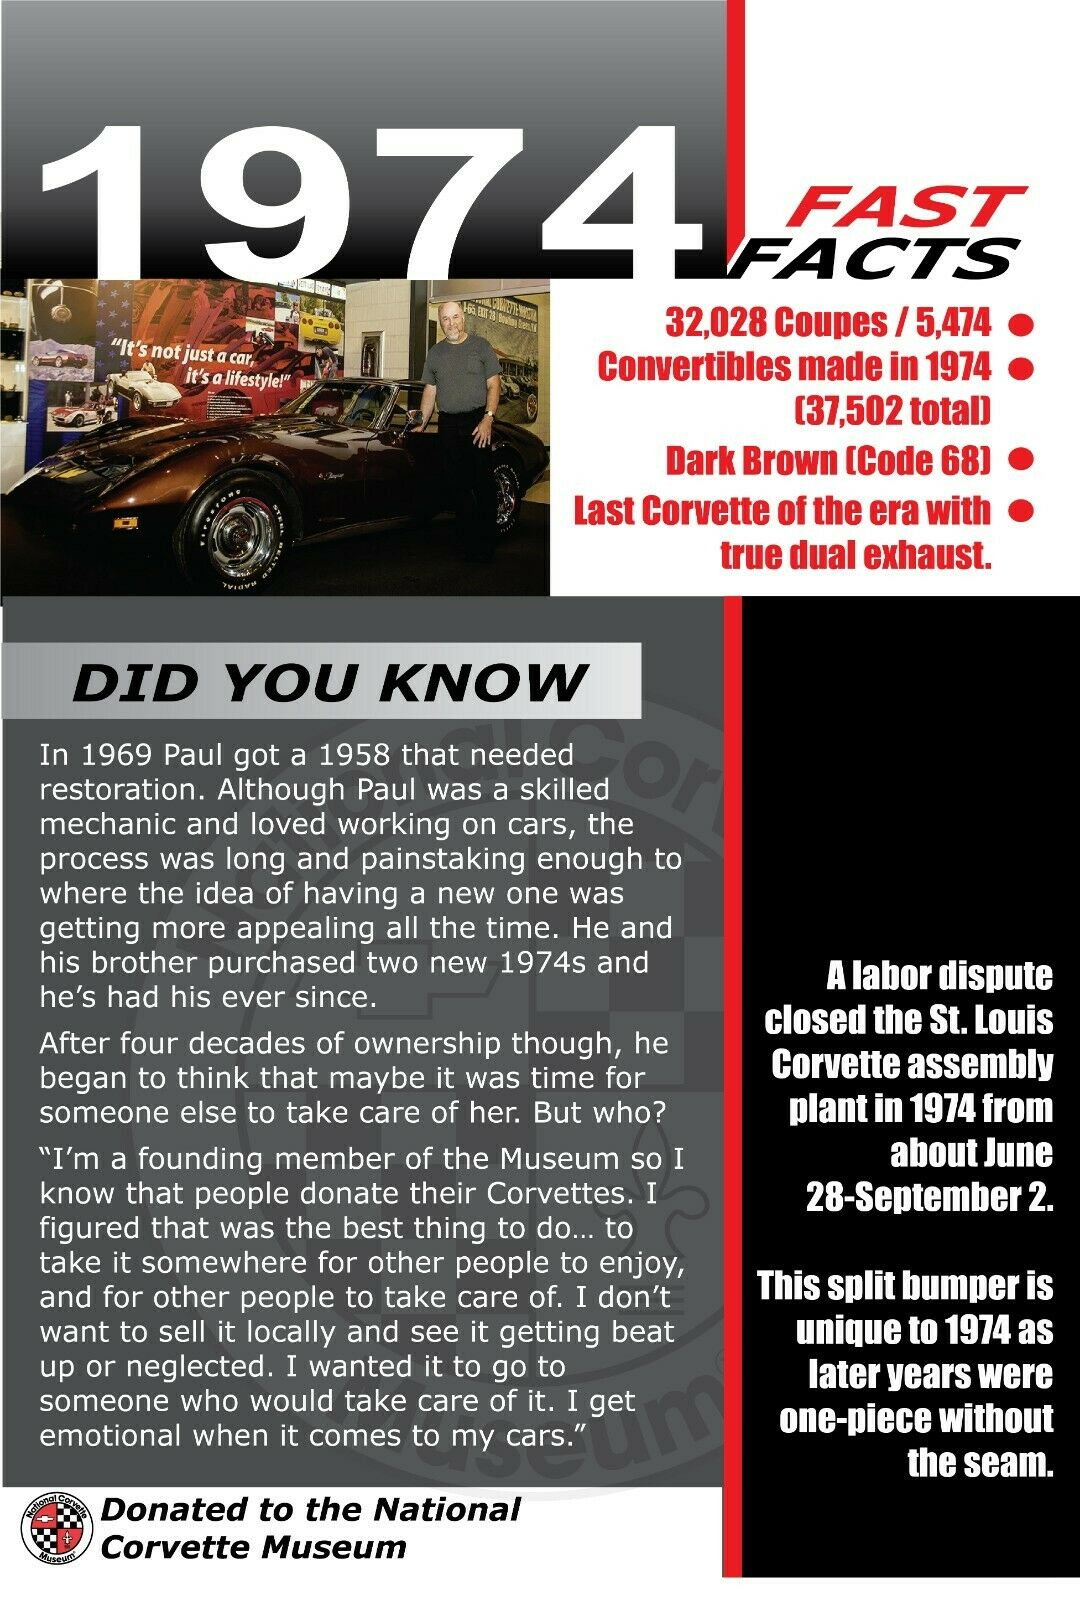 This placard was posted with this 1974 Corvette whenever it was on display at the National Corvette Museum. It provides a little history about the car itself and how the car became part of the NCM collection.